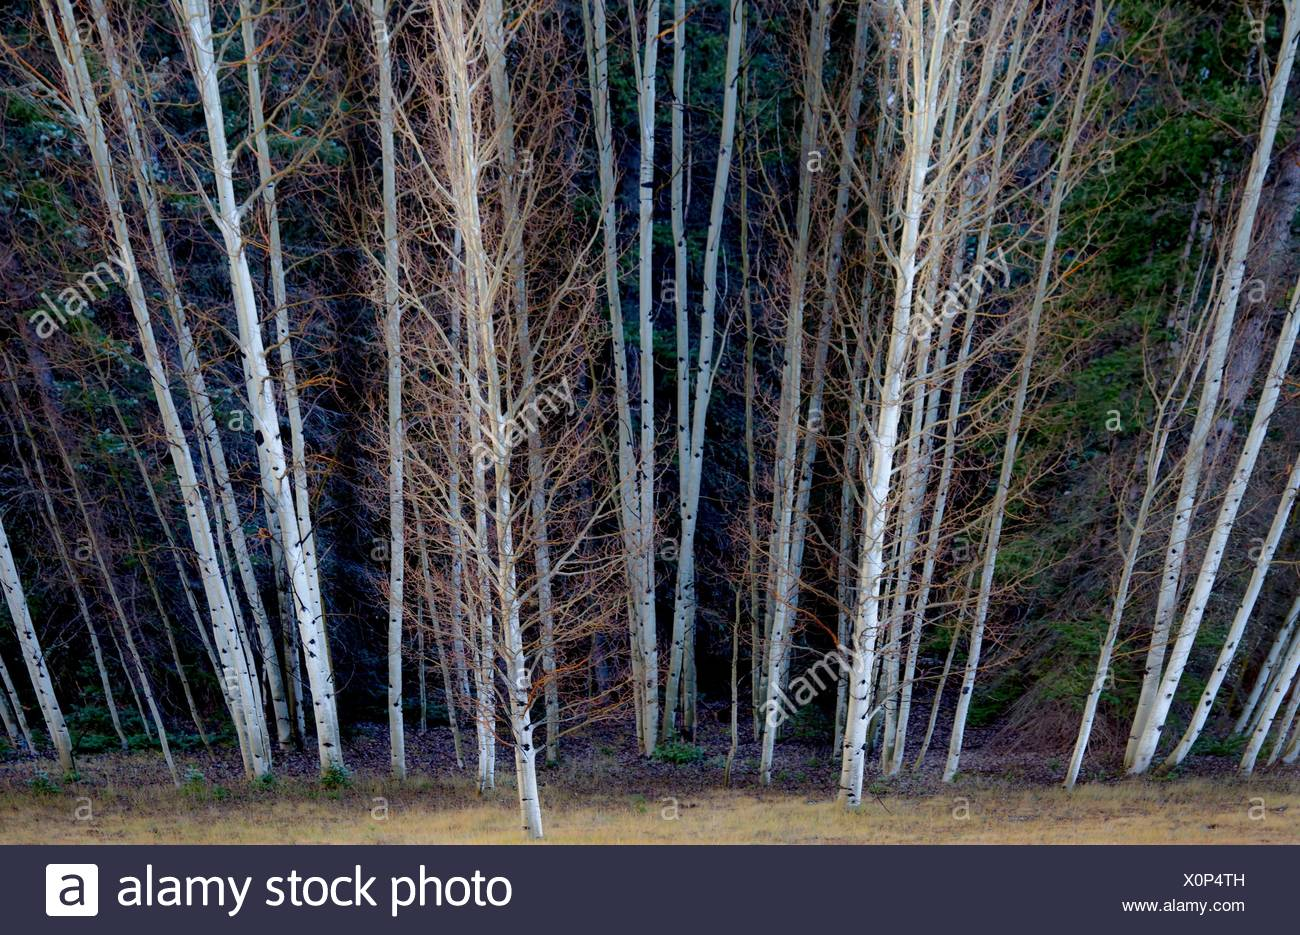 Fall colors have arrived at Kaibab National Forest, Arizona. - Stock Image